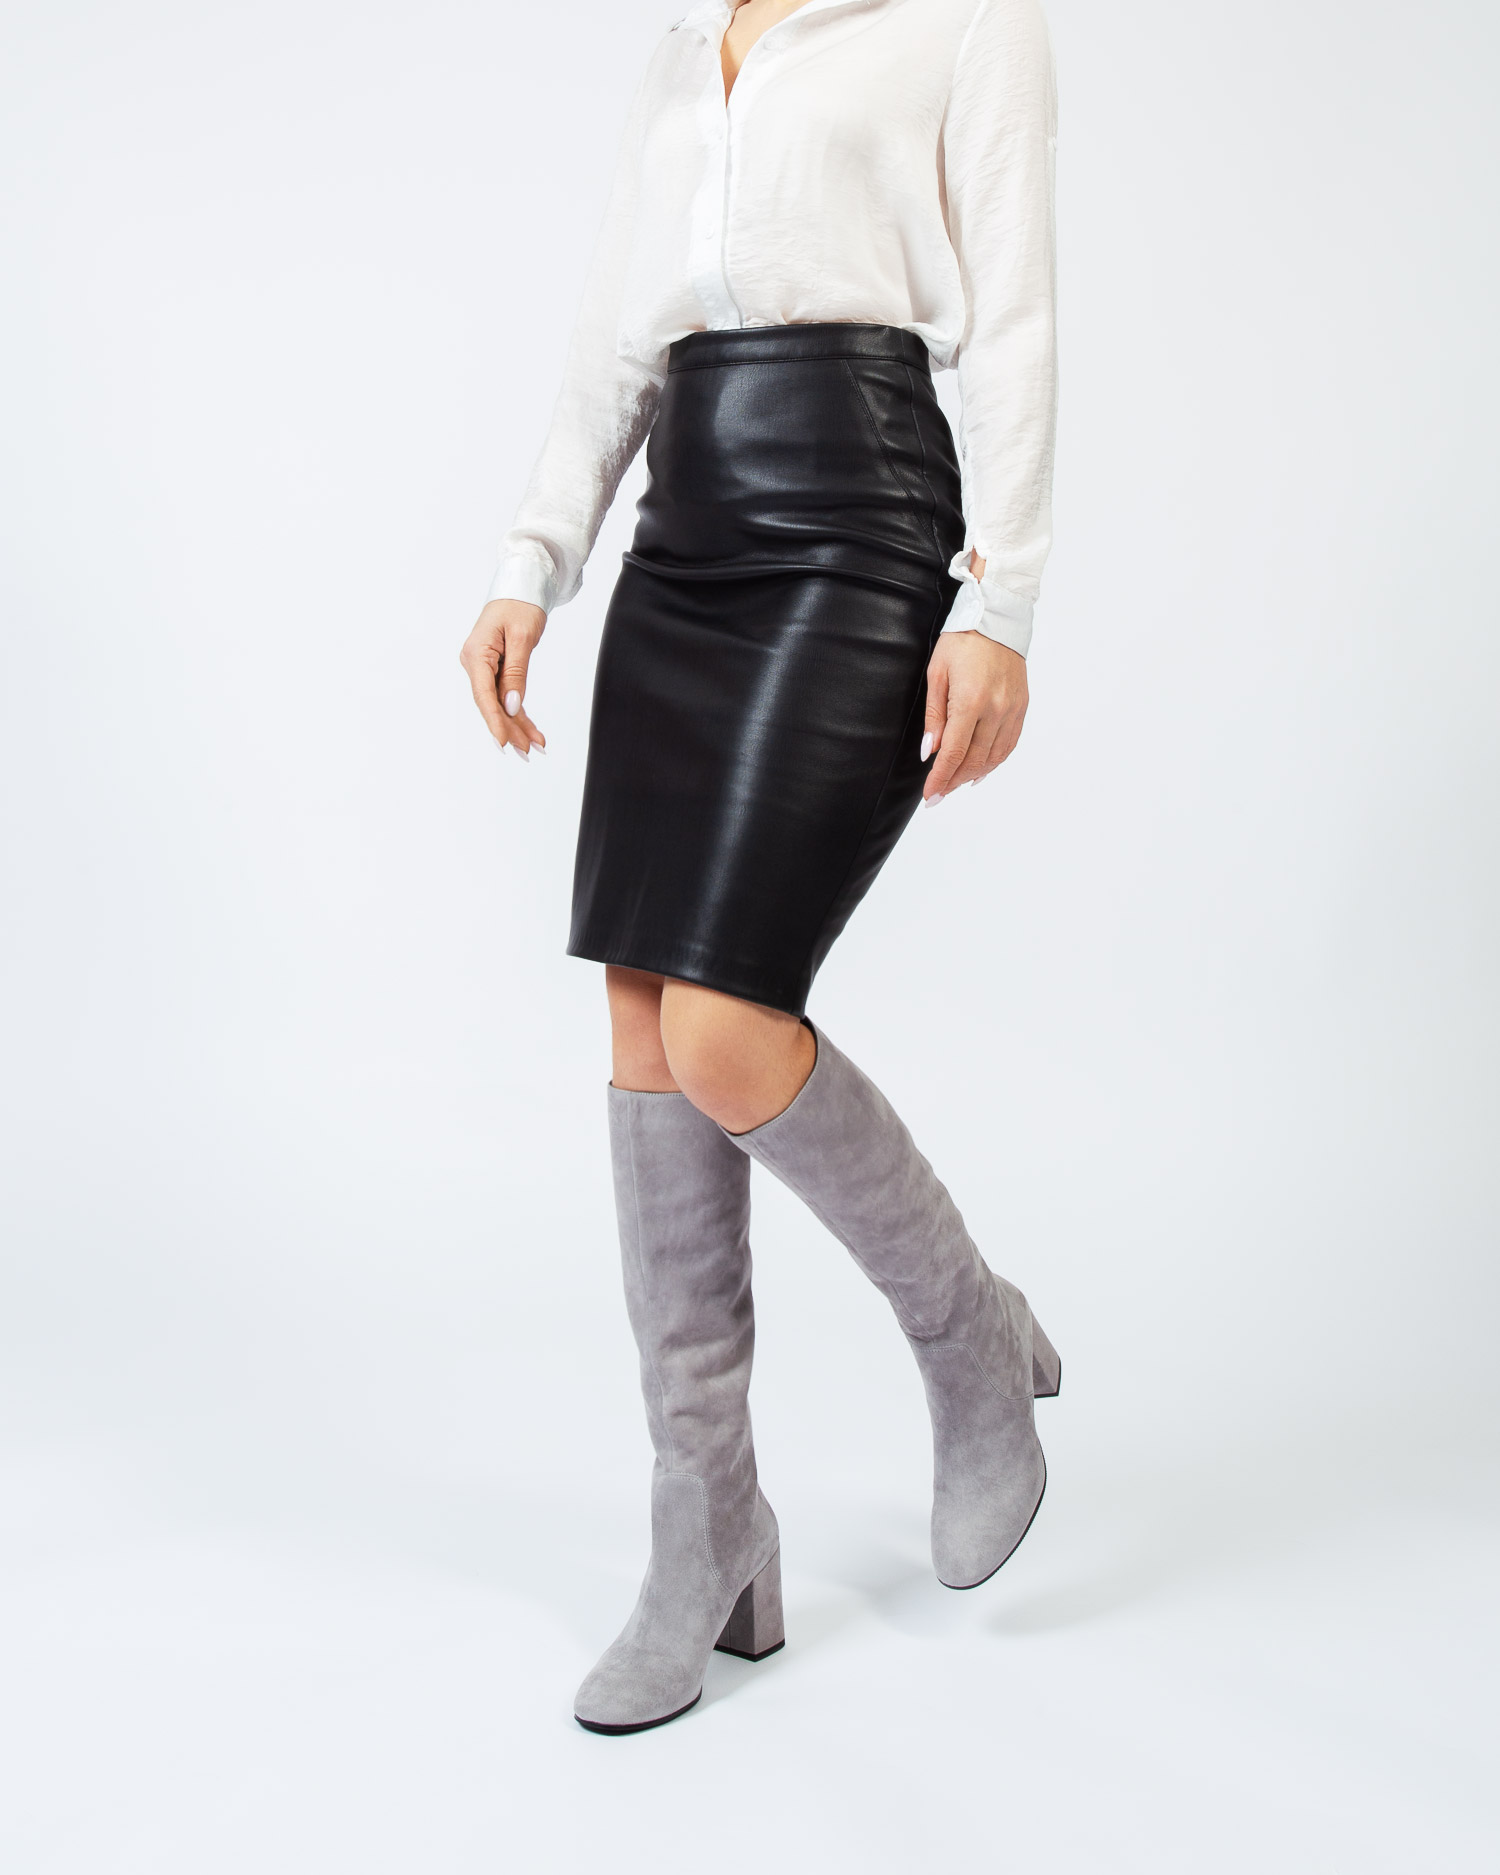 Women's fur-lined mid-calf boots PAZOLINI WN-IVV7-10